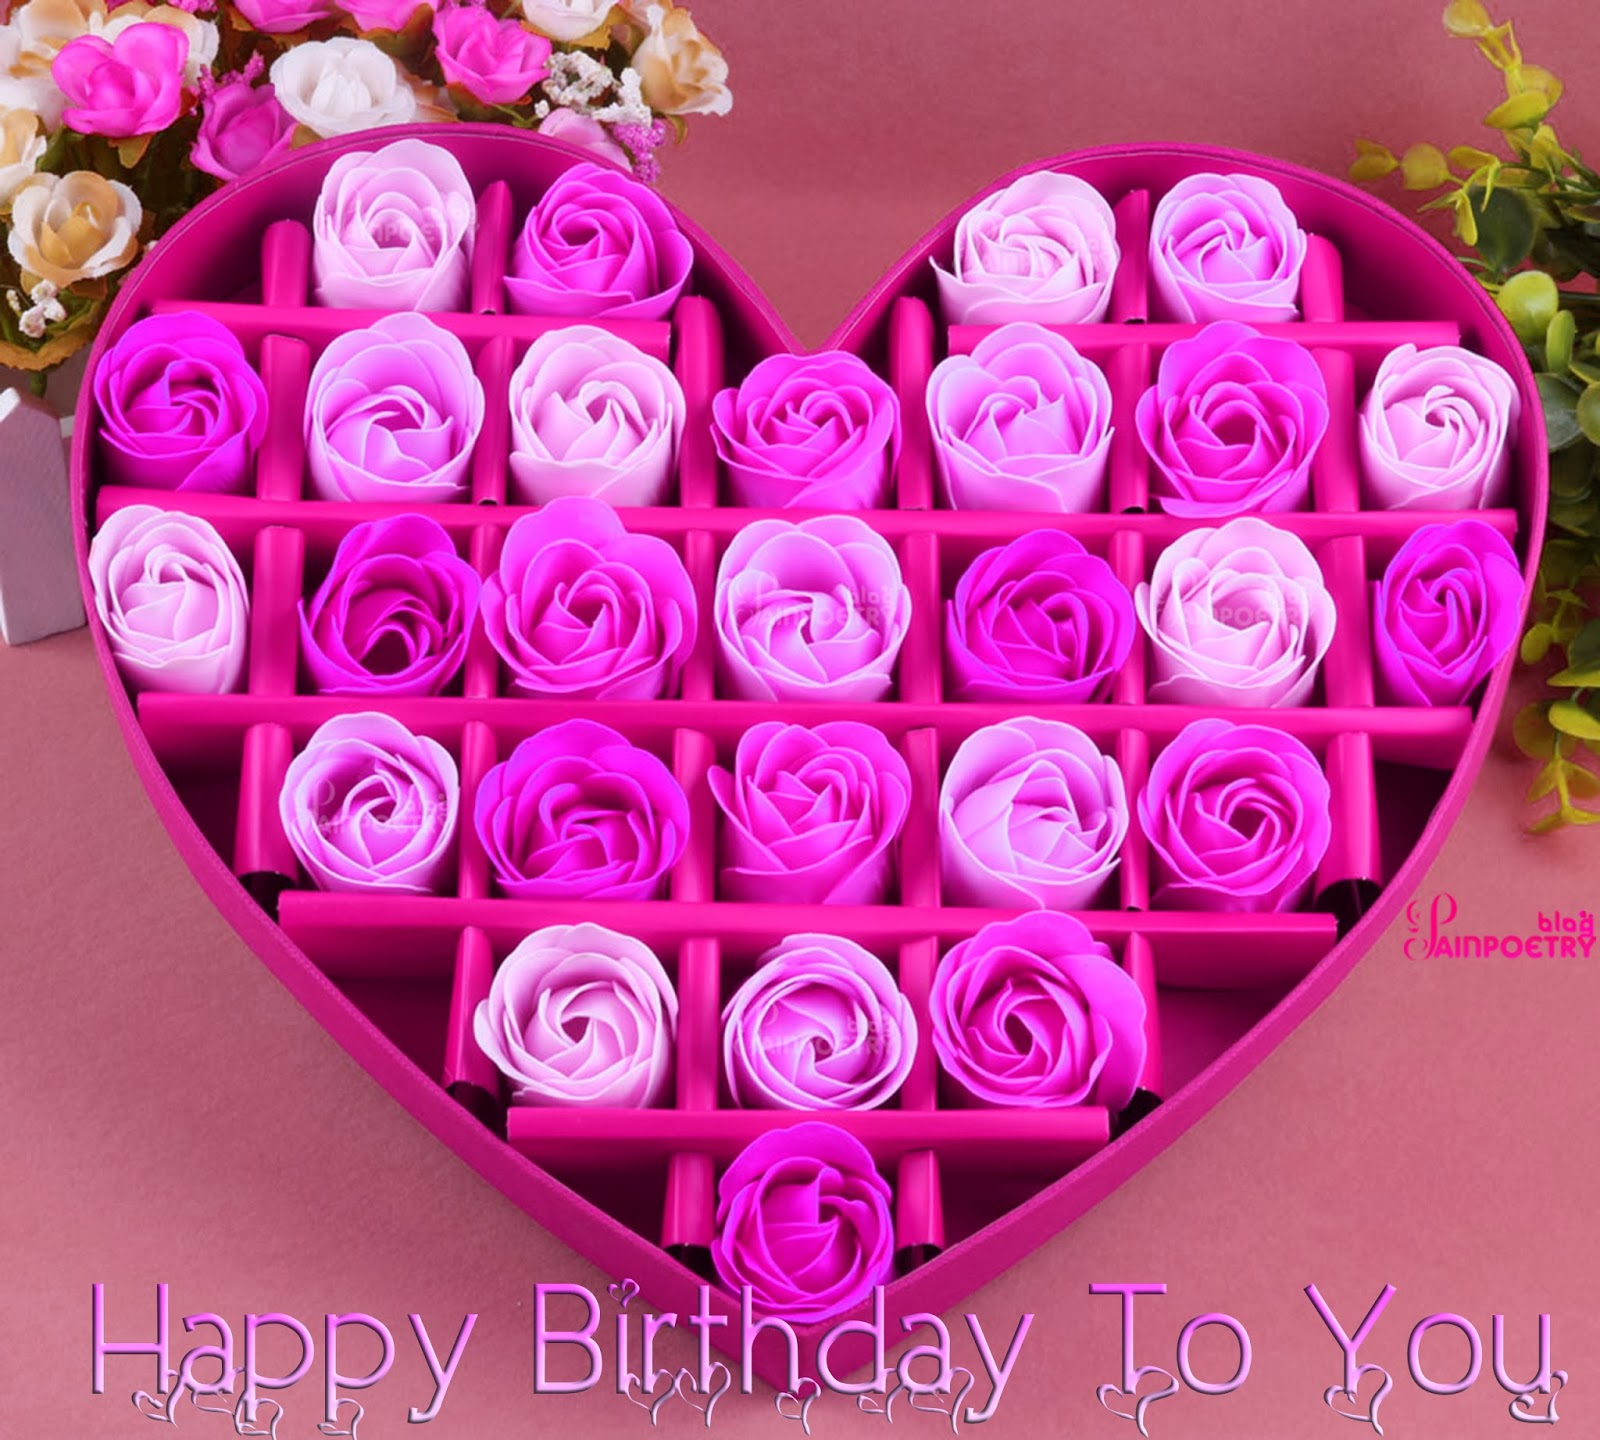 Happy-Birthday-Special-Gift-27-Flower-Fit-In-A-Heart-Image-HD-Wide